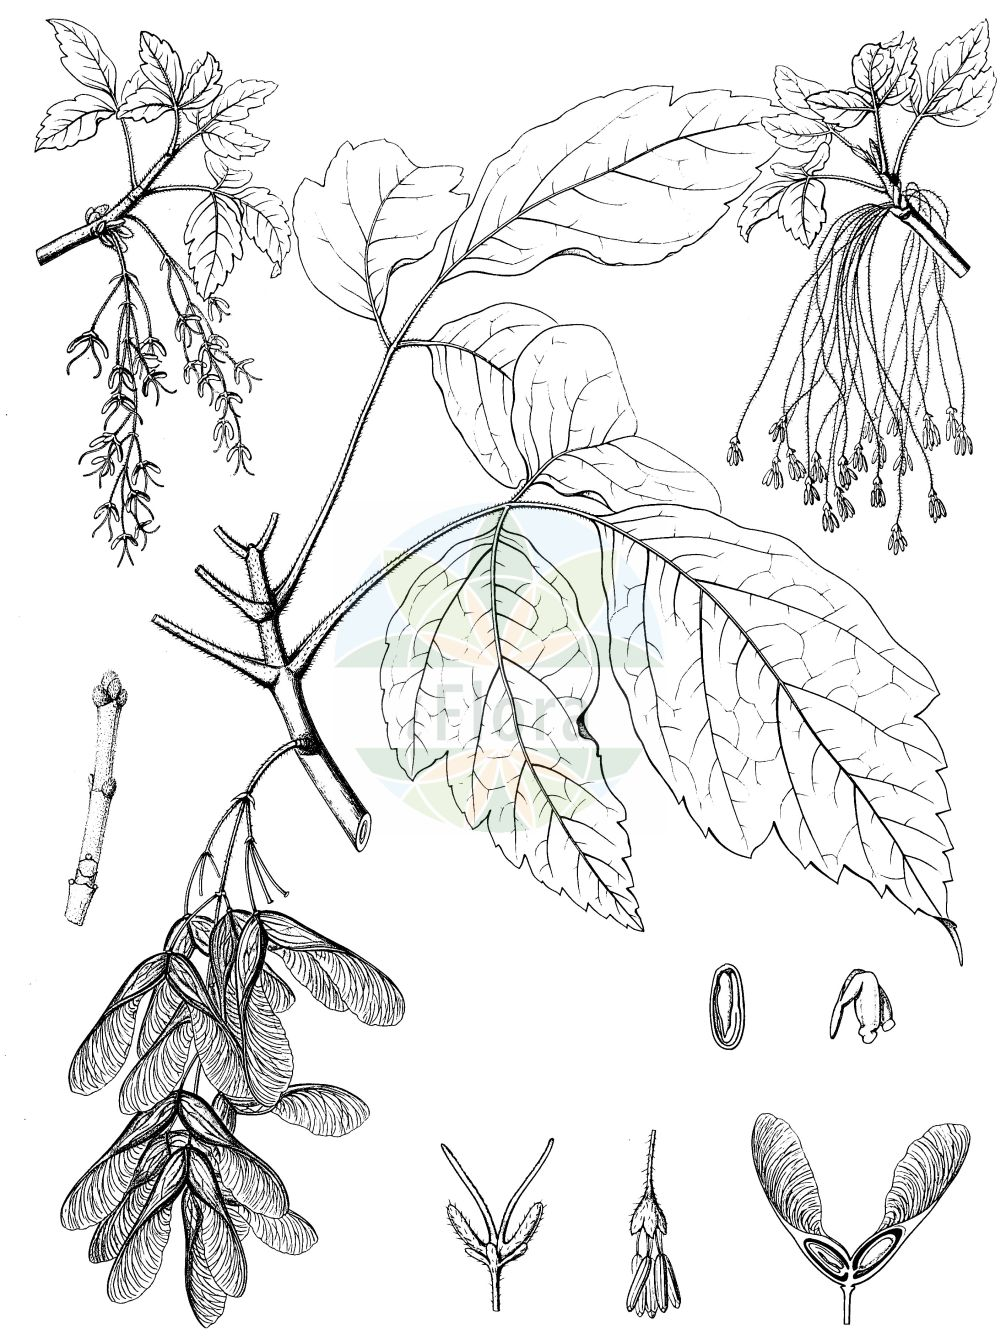 Historische Abbildung von Acer negundo (Eschen-Ahorn - Ashleaf Maple). Das Bild zeigt Blatt, Bluete, Frucht und Same. ---- Historical Drawing of Acer negundo (Eschen-Ahorn - Ashleaf Maple).The image is showing leaf, flower, fruit and seed.(Acer negundo,Eschen-Ahorn,Ashleaf Maple,Acer negundo,Negundo aceroides,Negundo fraxinifolium,Eschen-Ahorn,Ashleaf Maple,Water Ash,Black Ash,Boxelder,Cutleaf Maple,Maple Ash,Red River Maple,Ash-leaved Maple,Manitoba Maple,Acer,Ahorn,Maple,Sapindaceae,Seifenbaumgewaechse,Soapberry family,Blatt,Bluete,Frucht,Same,leaf,flower,fruit,seed,Sargent (1898-1902))